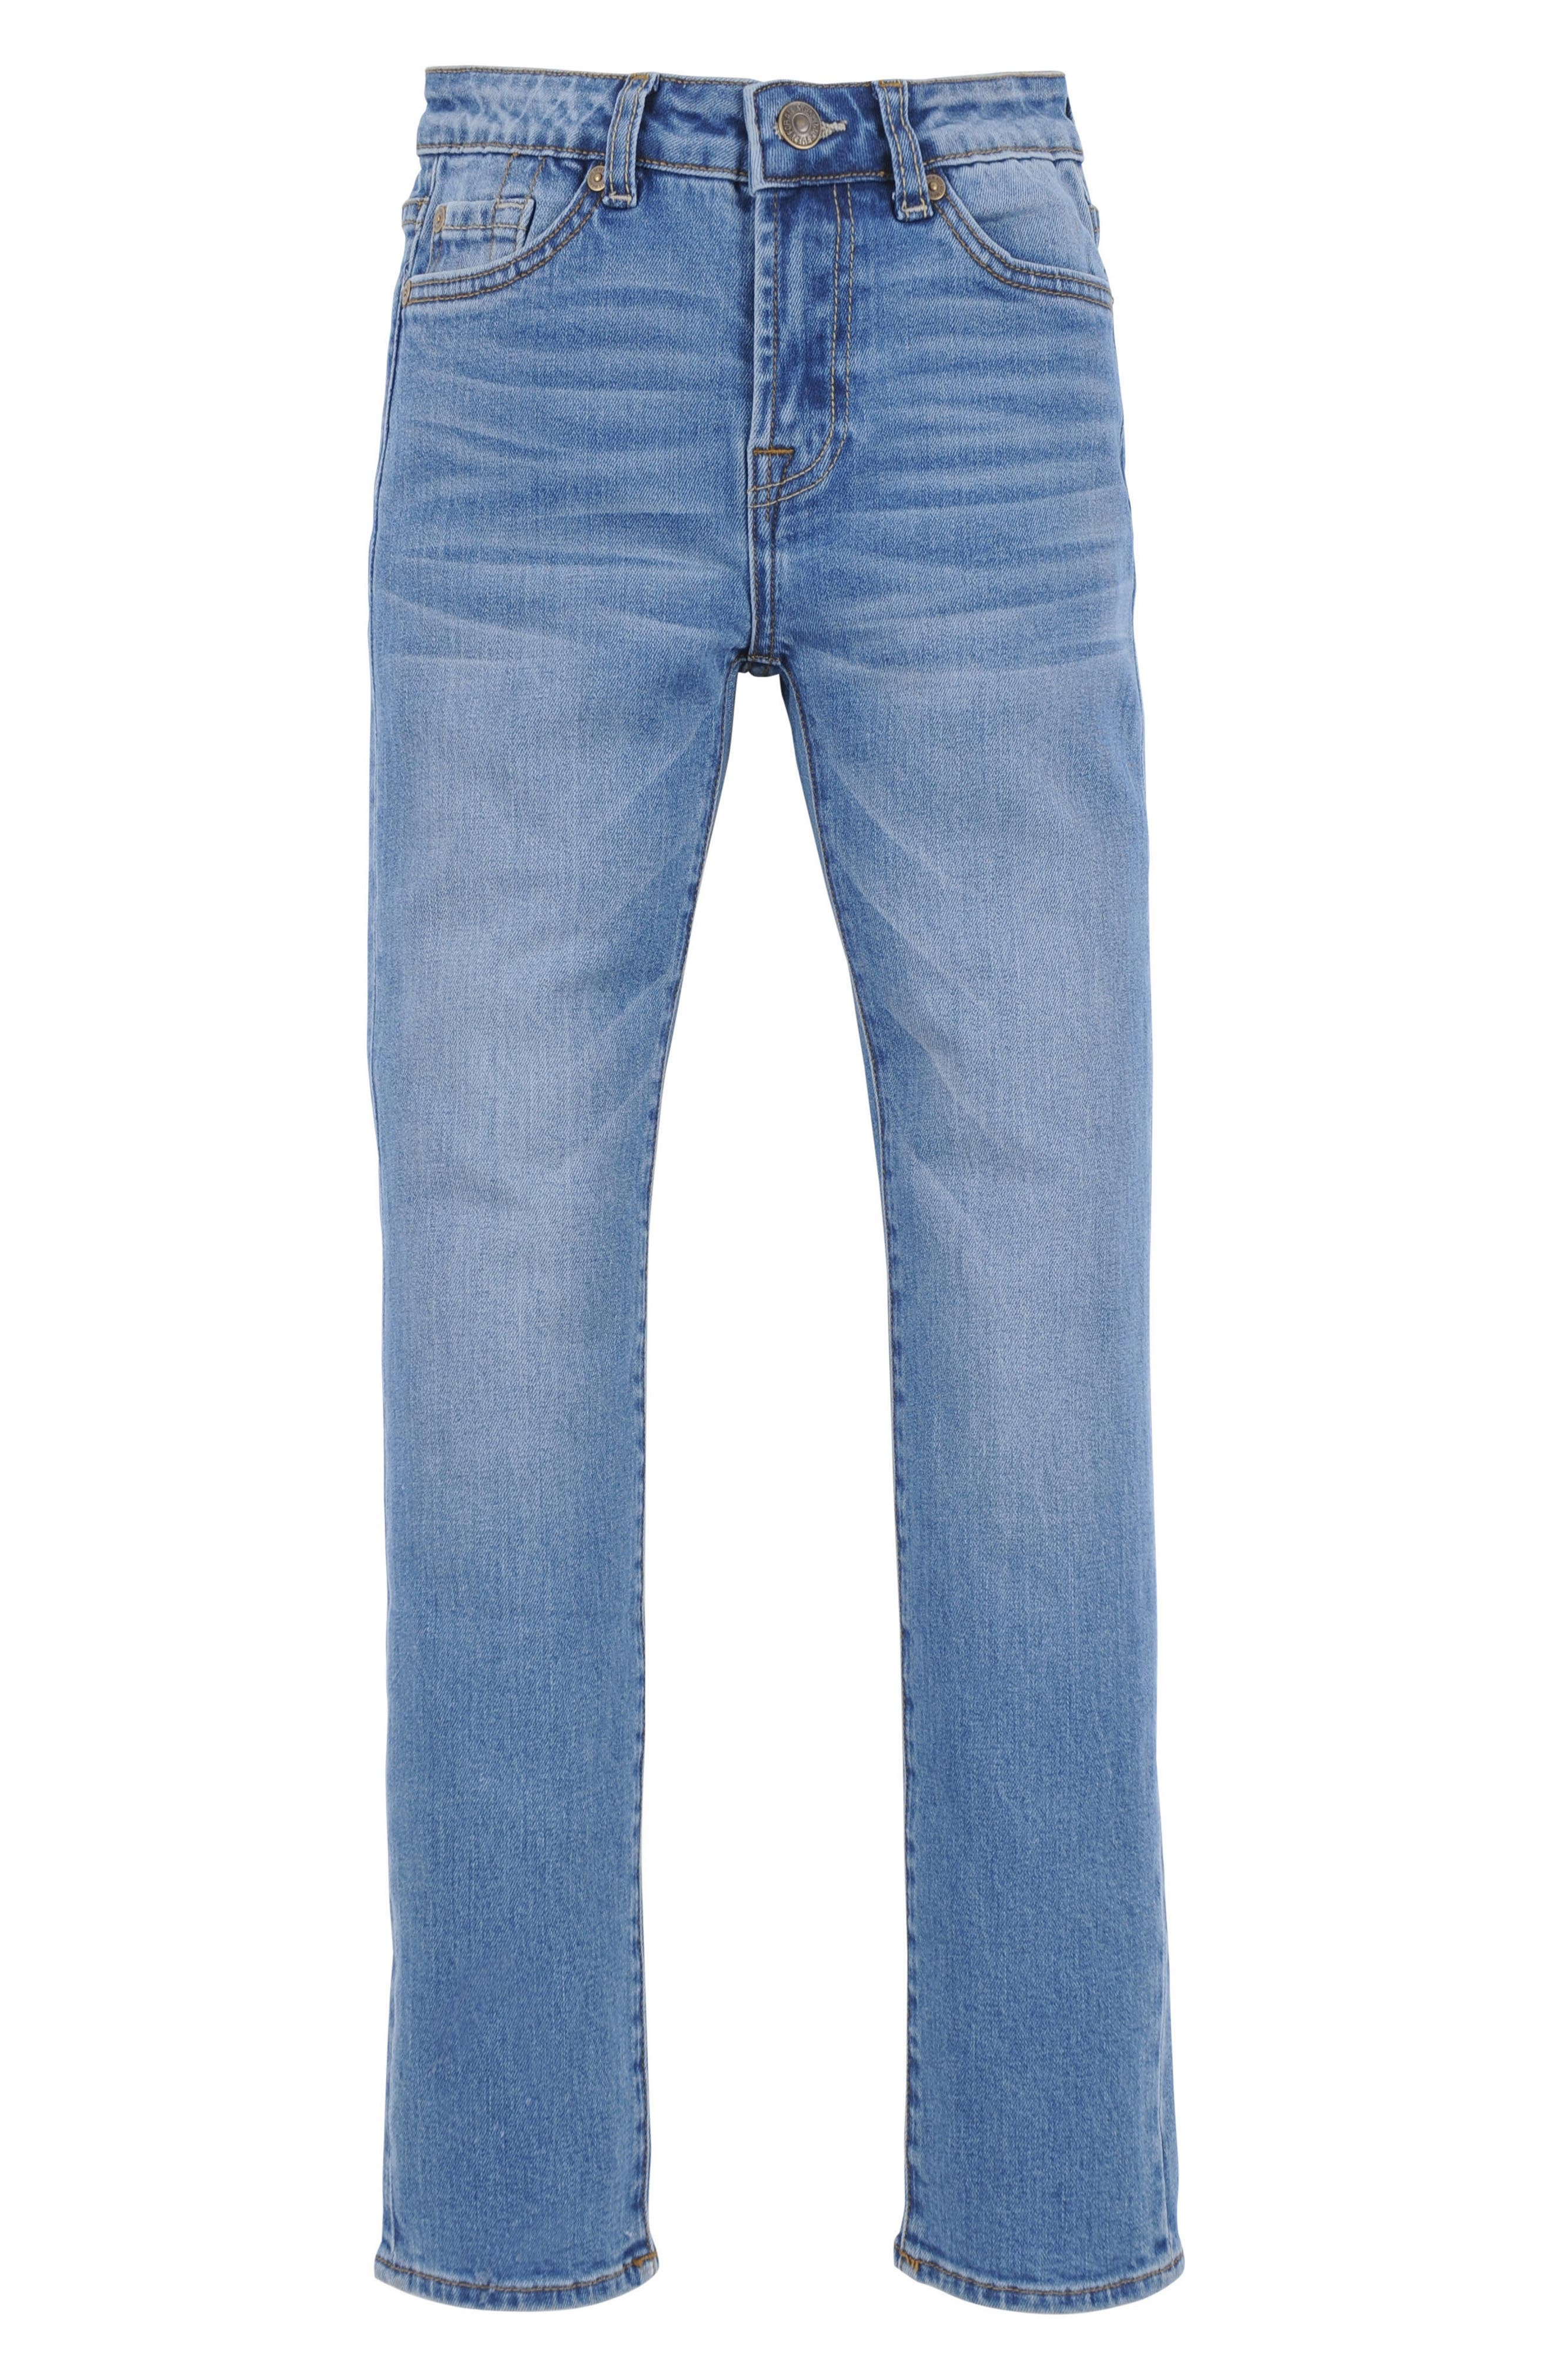 Slimmy Foolproof Jeans,                             Main thumbnail 2, color,